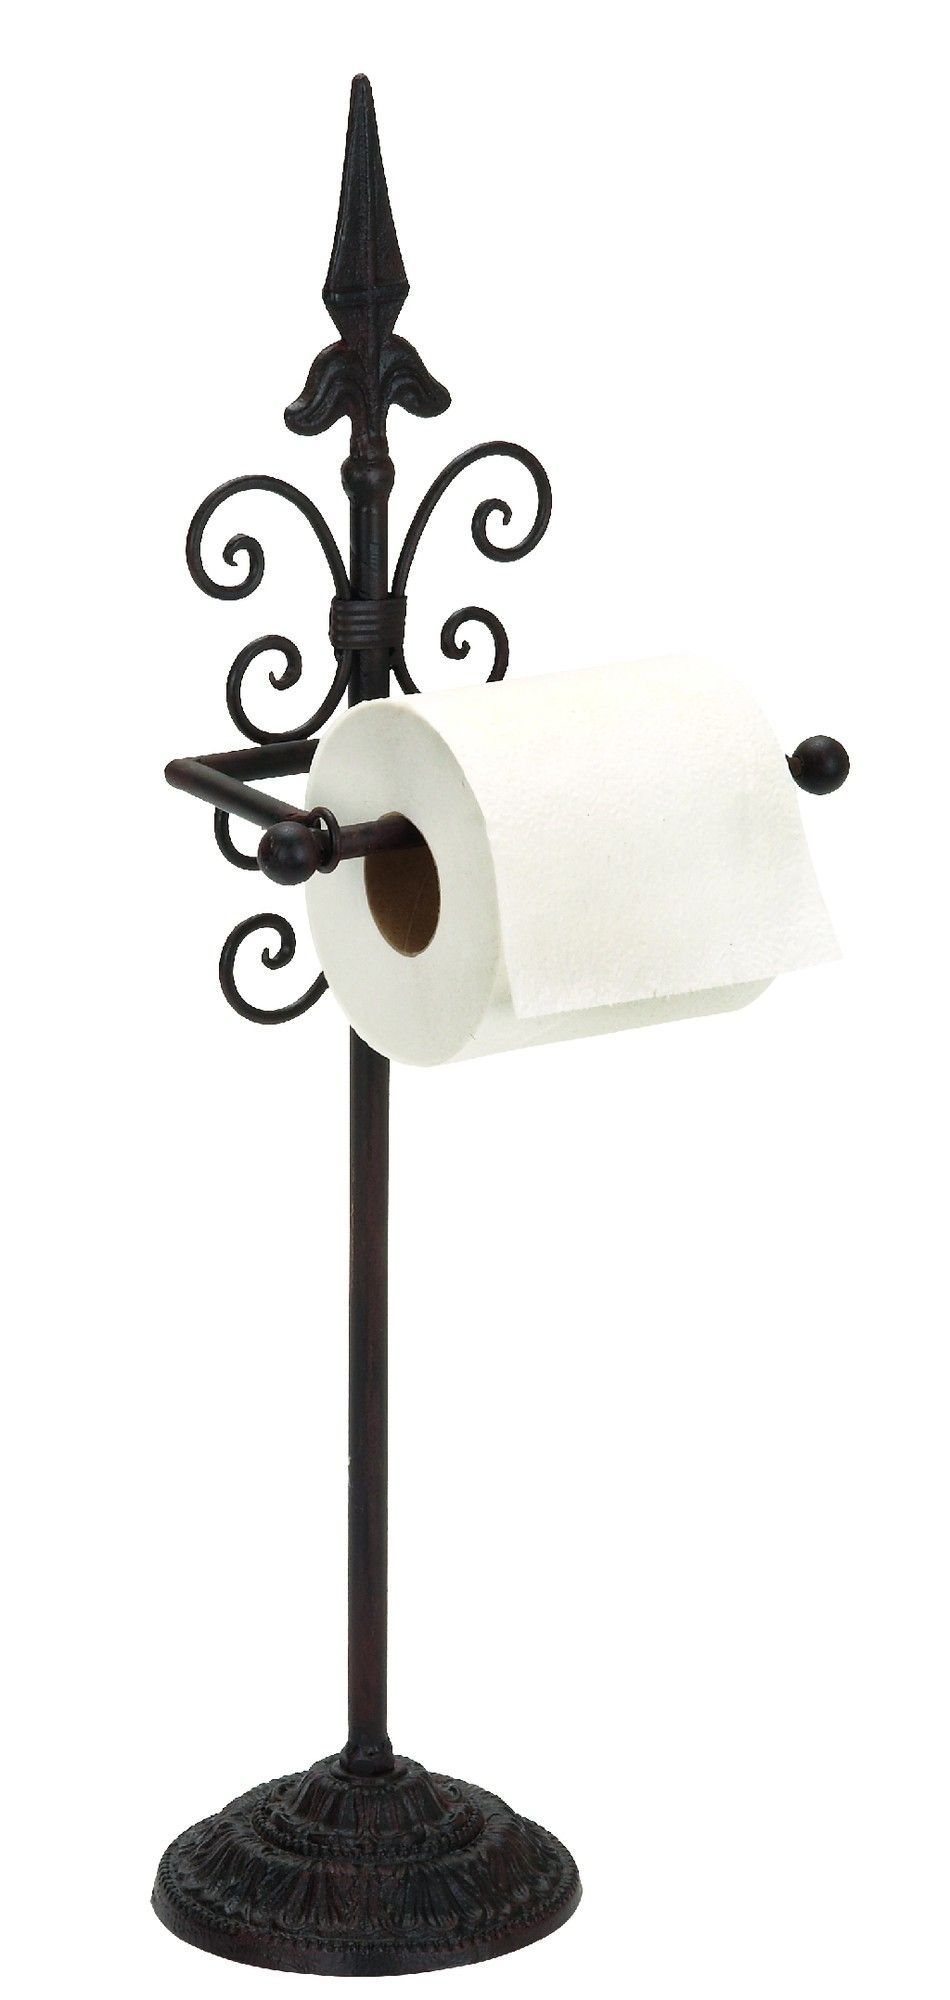 Woodland Imports Free Standing Toilet Paper Holder Free Standing Toilet Paper Holder Toilet Paper Stand Toilet Paper Holder Stand